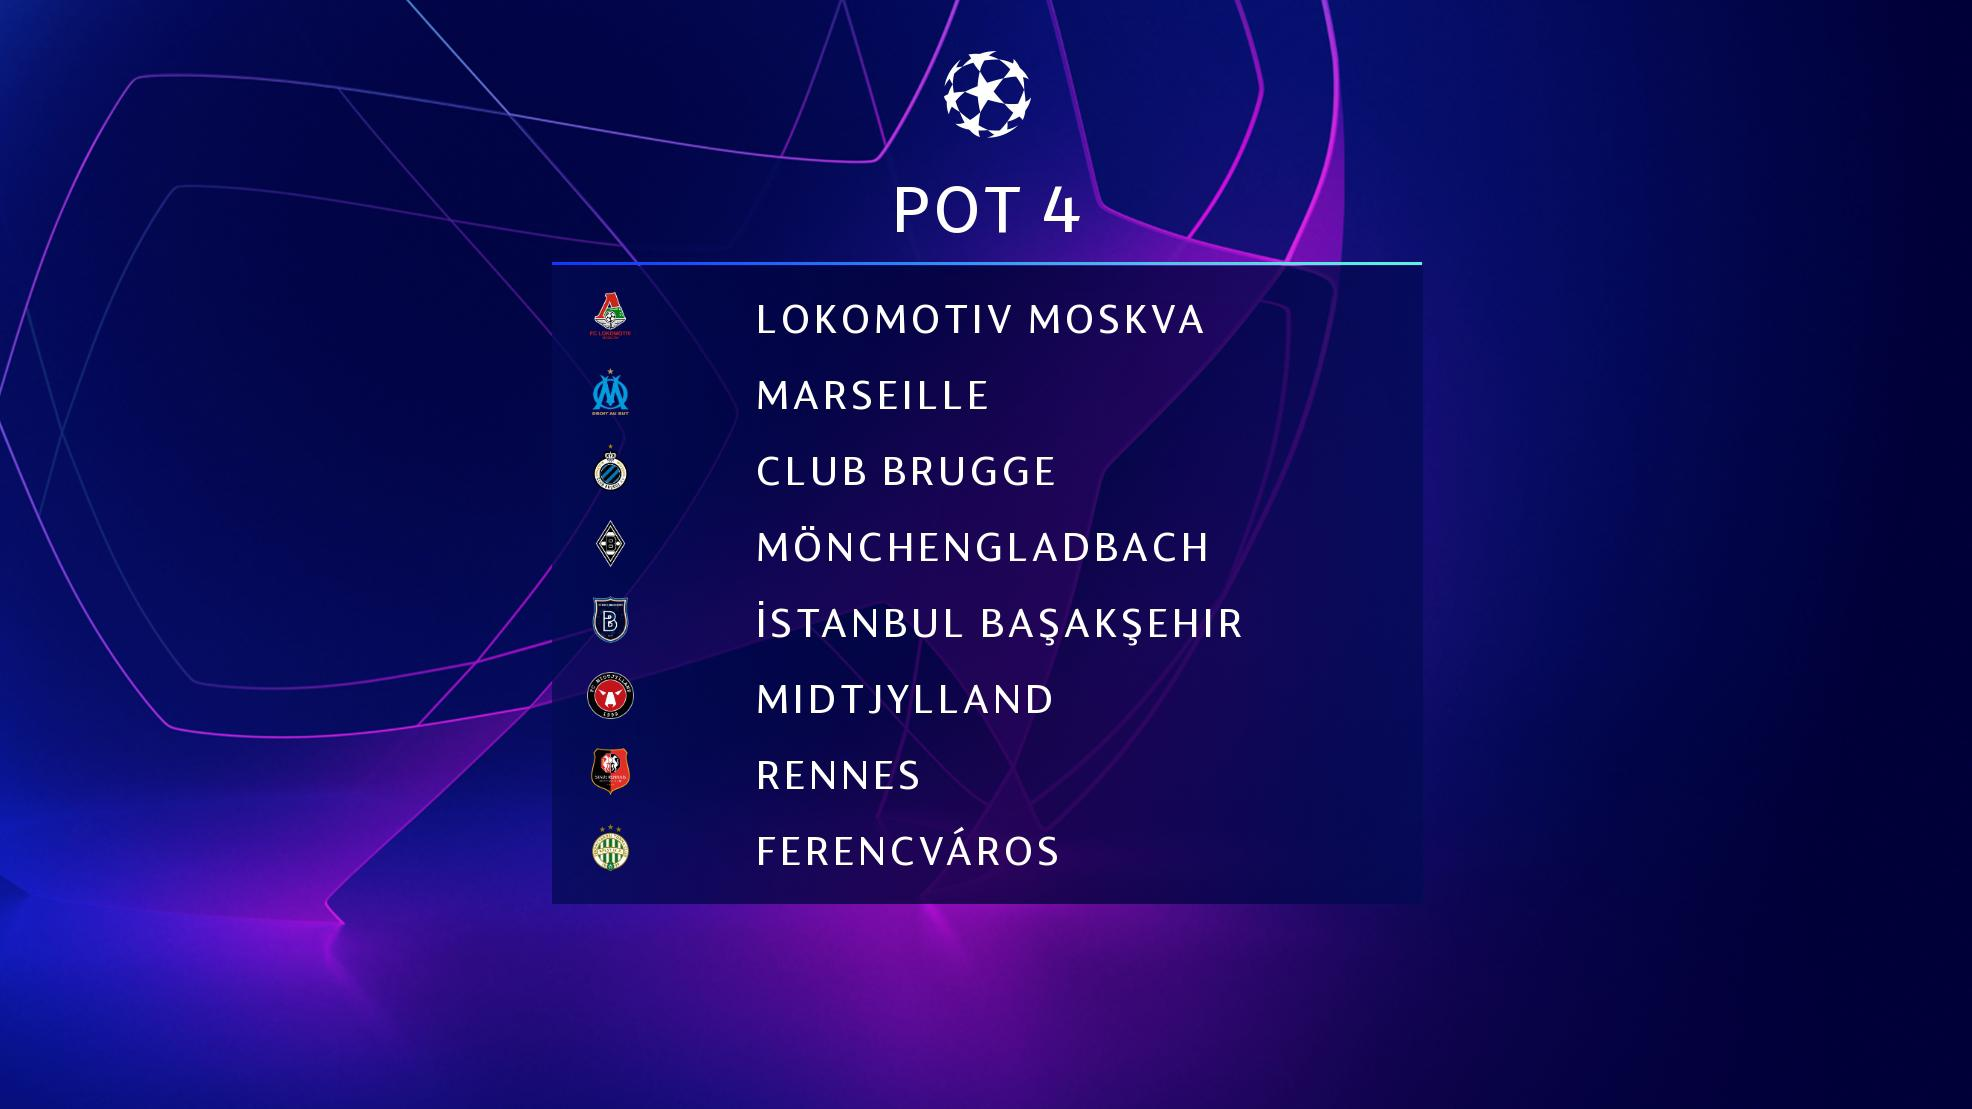 Group stage draw: Pot 4